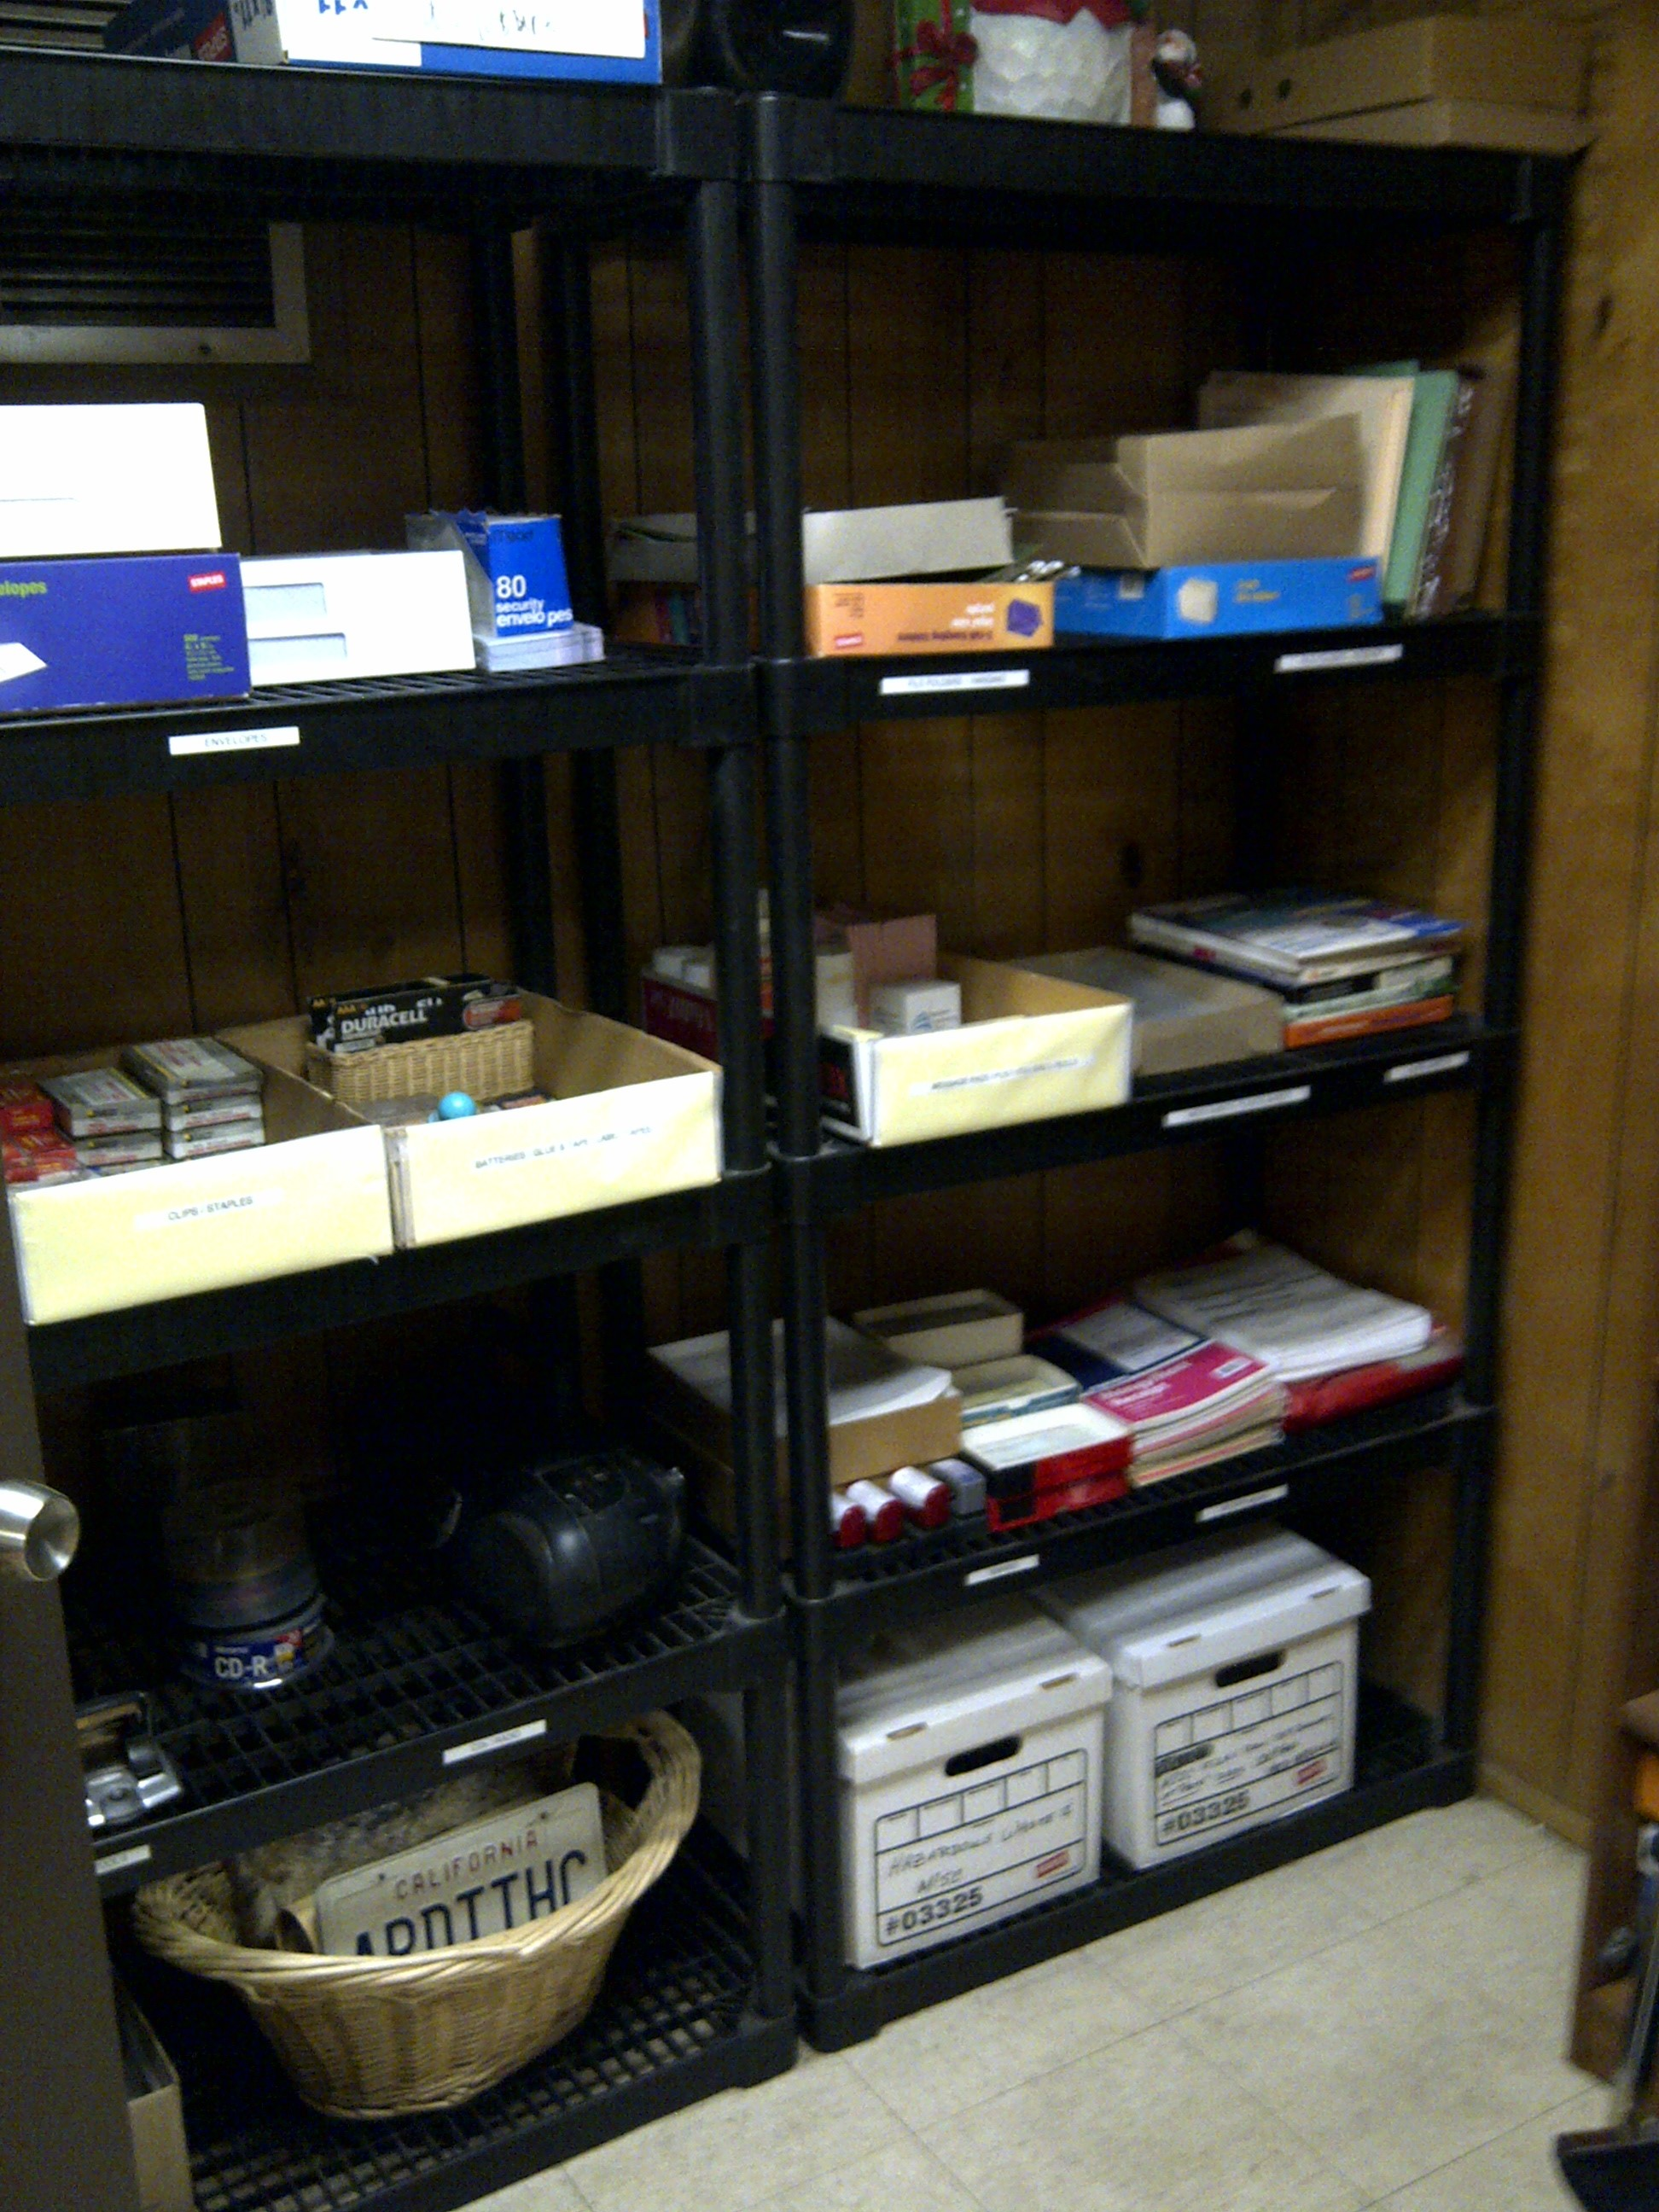 AFTER Center Shelves Office Supplies Storage Room  Sensible Organizing Solutions